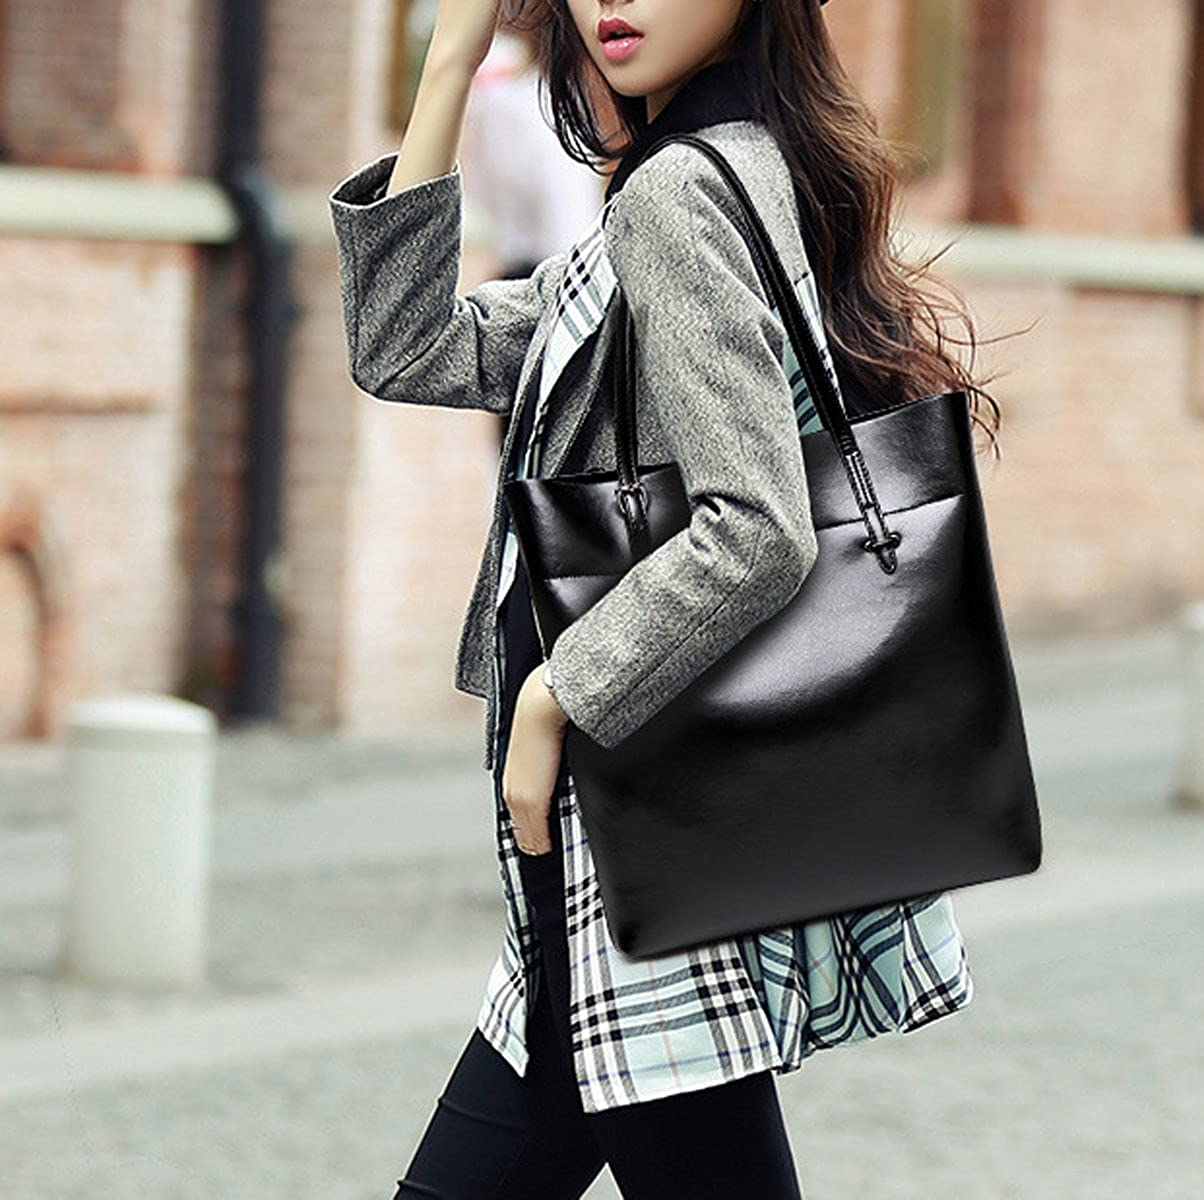 Woman Tote Bag Europe Fashion Simple Casual All-match Single Shoulder Bag